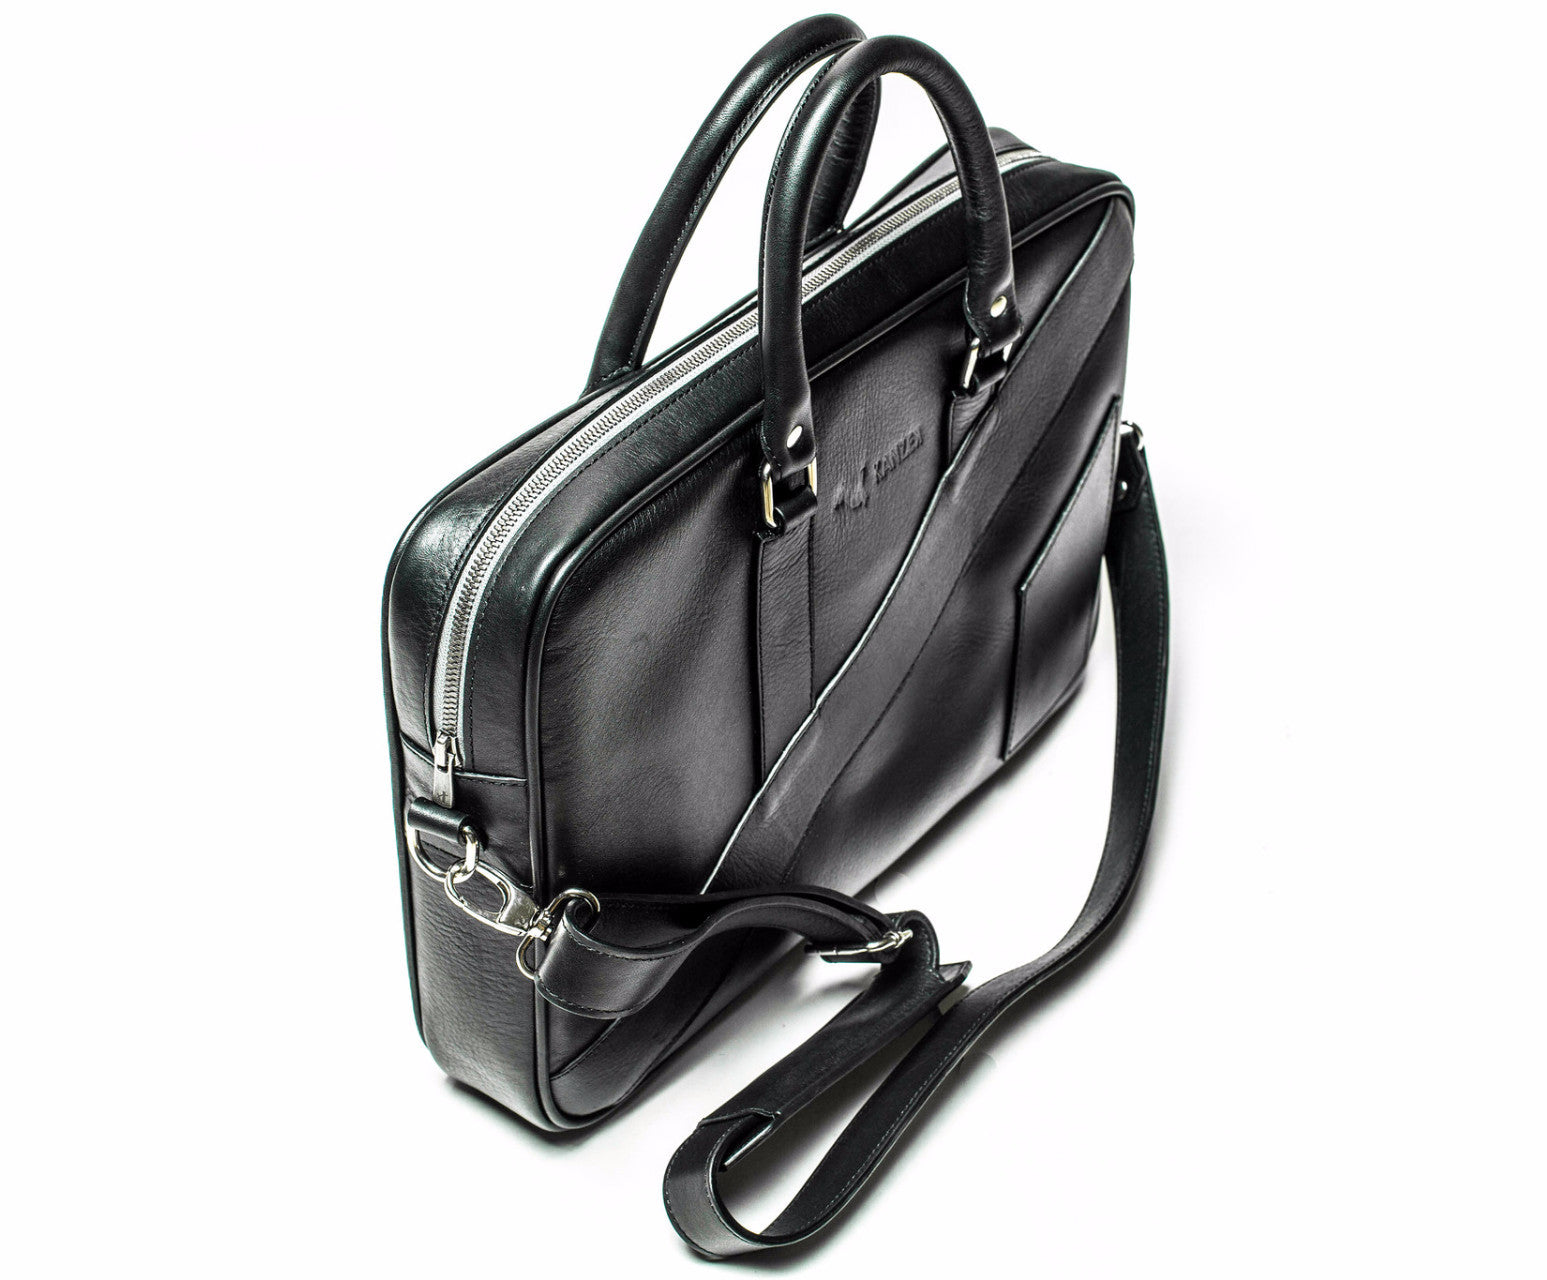 "Black 15.6"" Leather Laptop Bag - The Dollar Gent Briefcase"